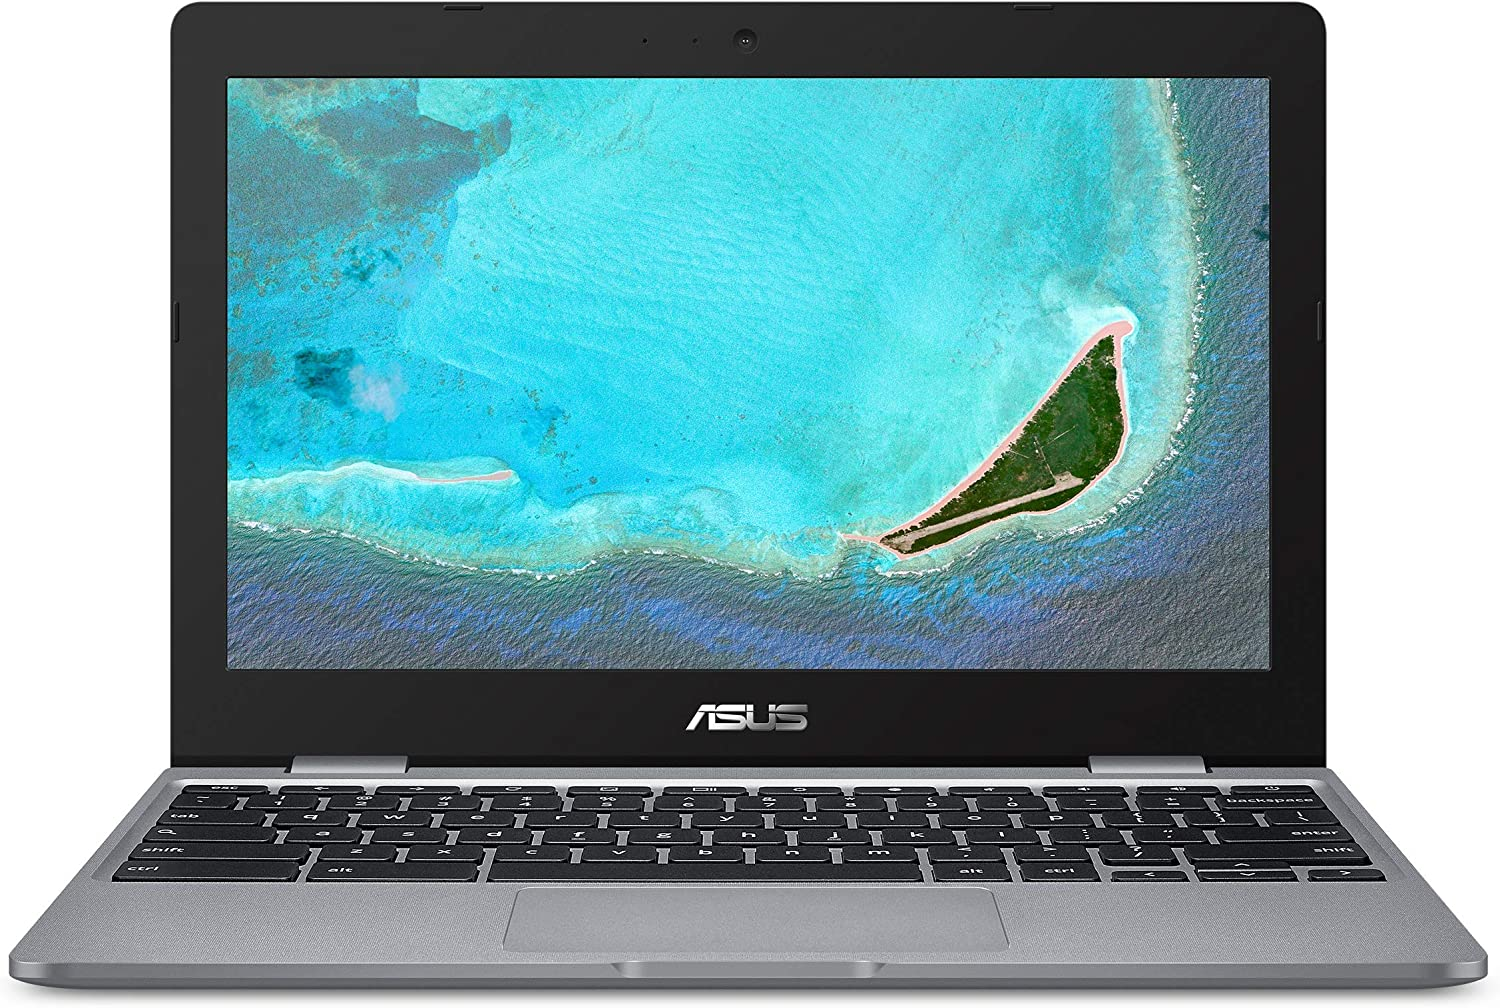 "ASUS Chromebook C223NA-DH02 11.6"" HD, Intel Dual-Core Celeron N3350 Processor (Up to 2.4GHz) 4GB RAM, 32GB eMMC Storage, Grey (Renewed)"